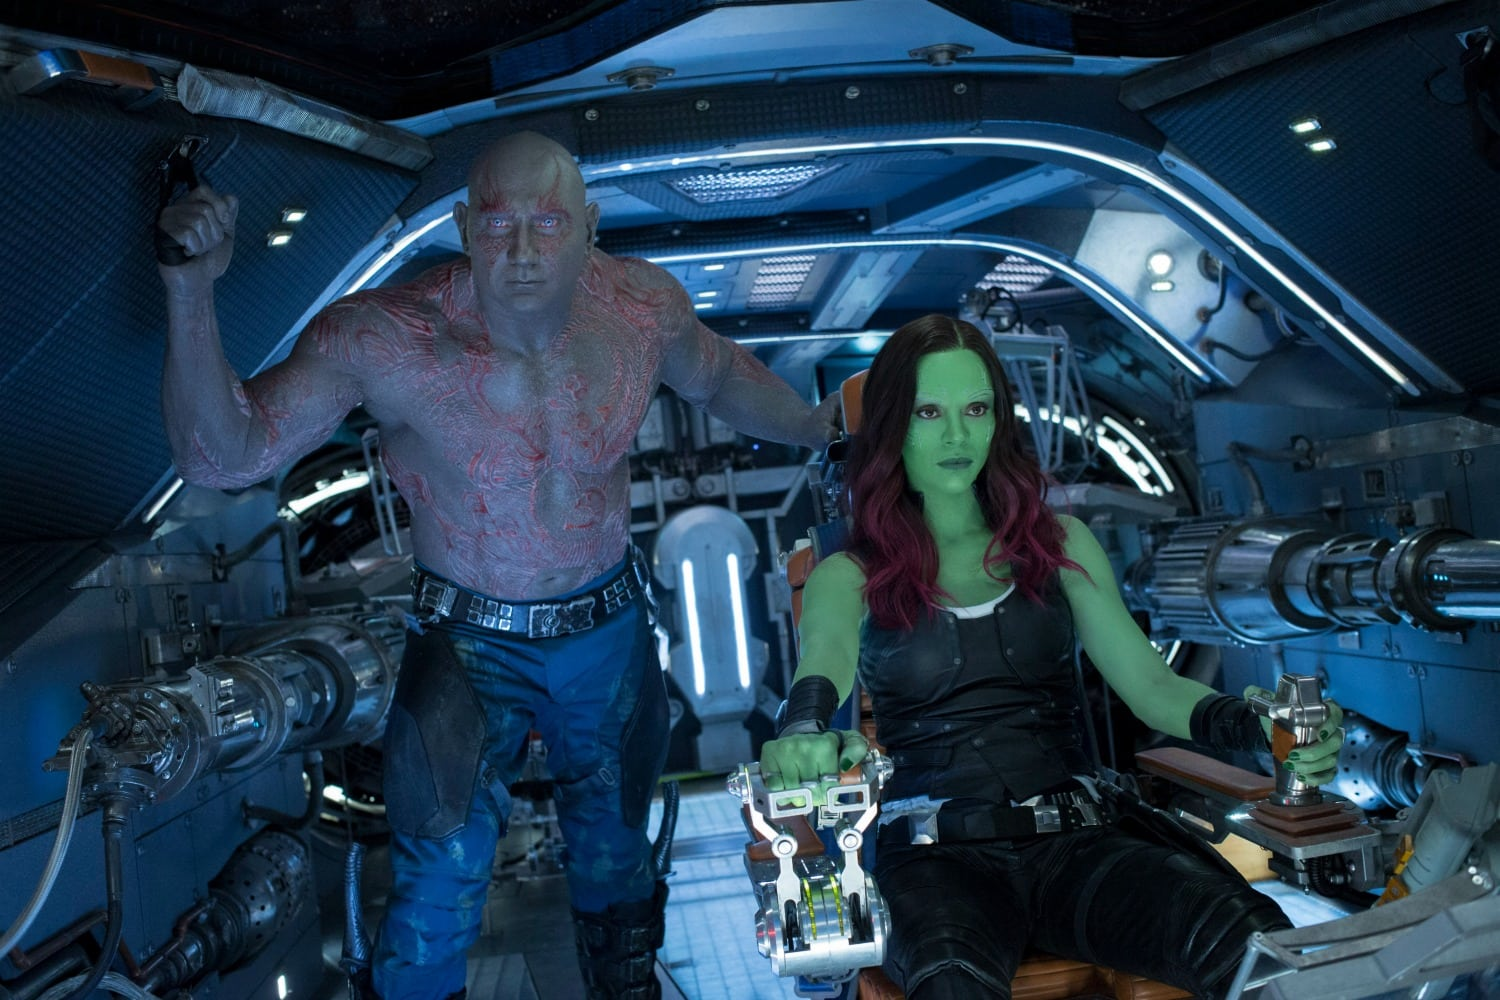 Gamora and Drax